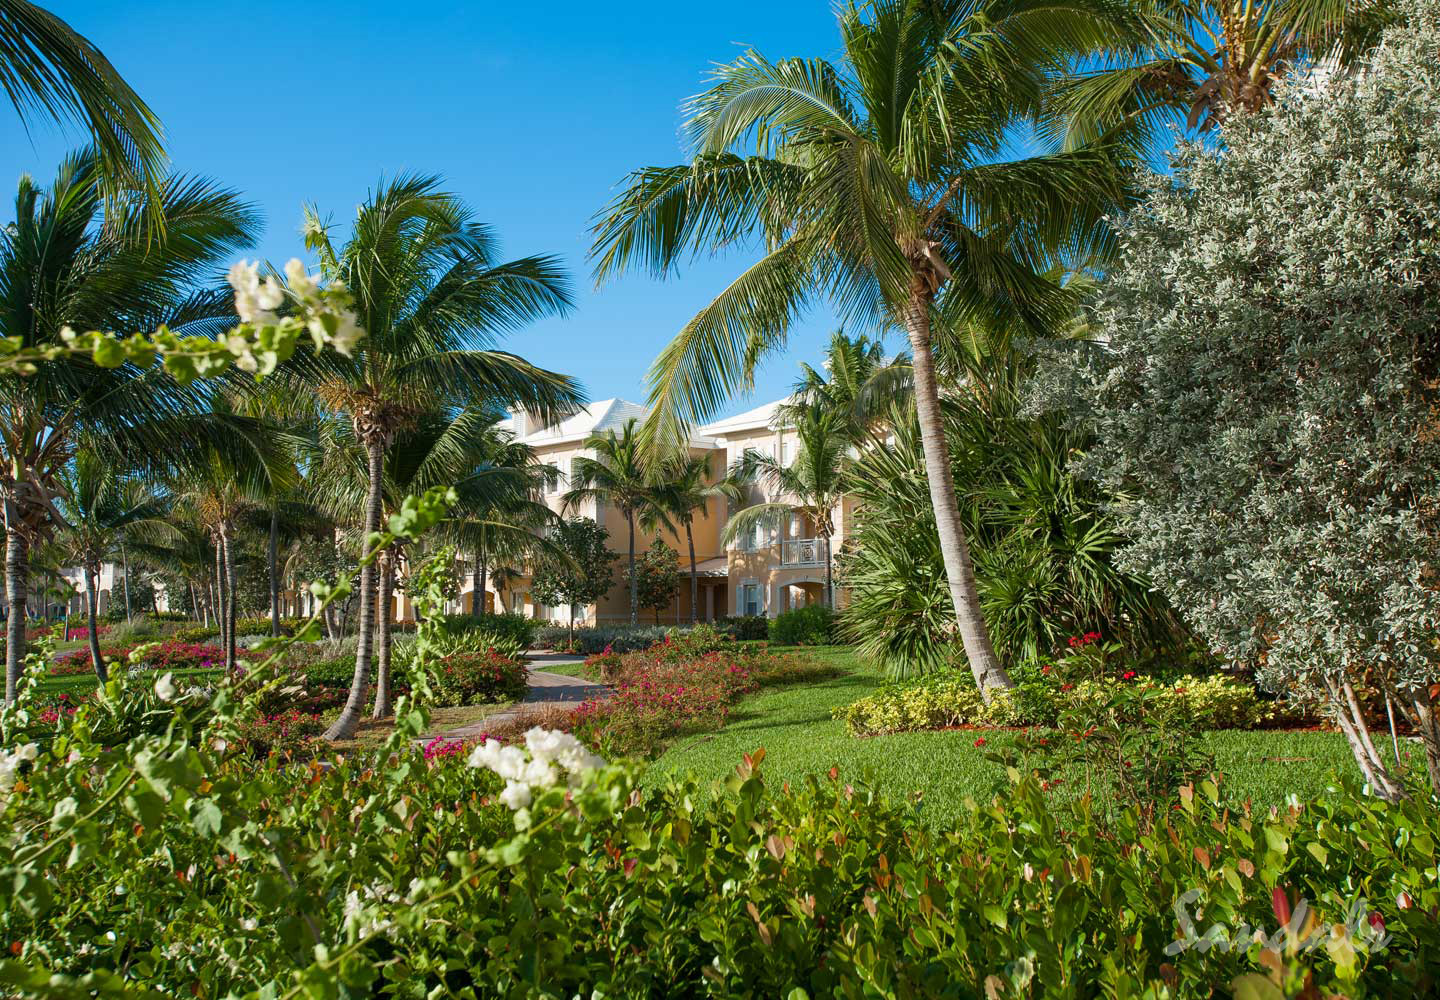 Travel Agency All-Inclusive Resort Sandals Emerald Bay 060